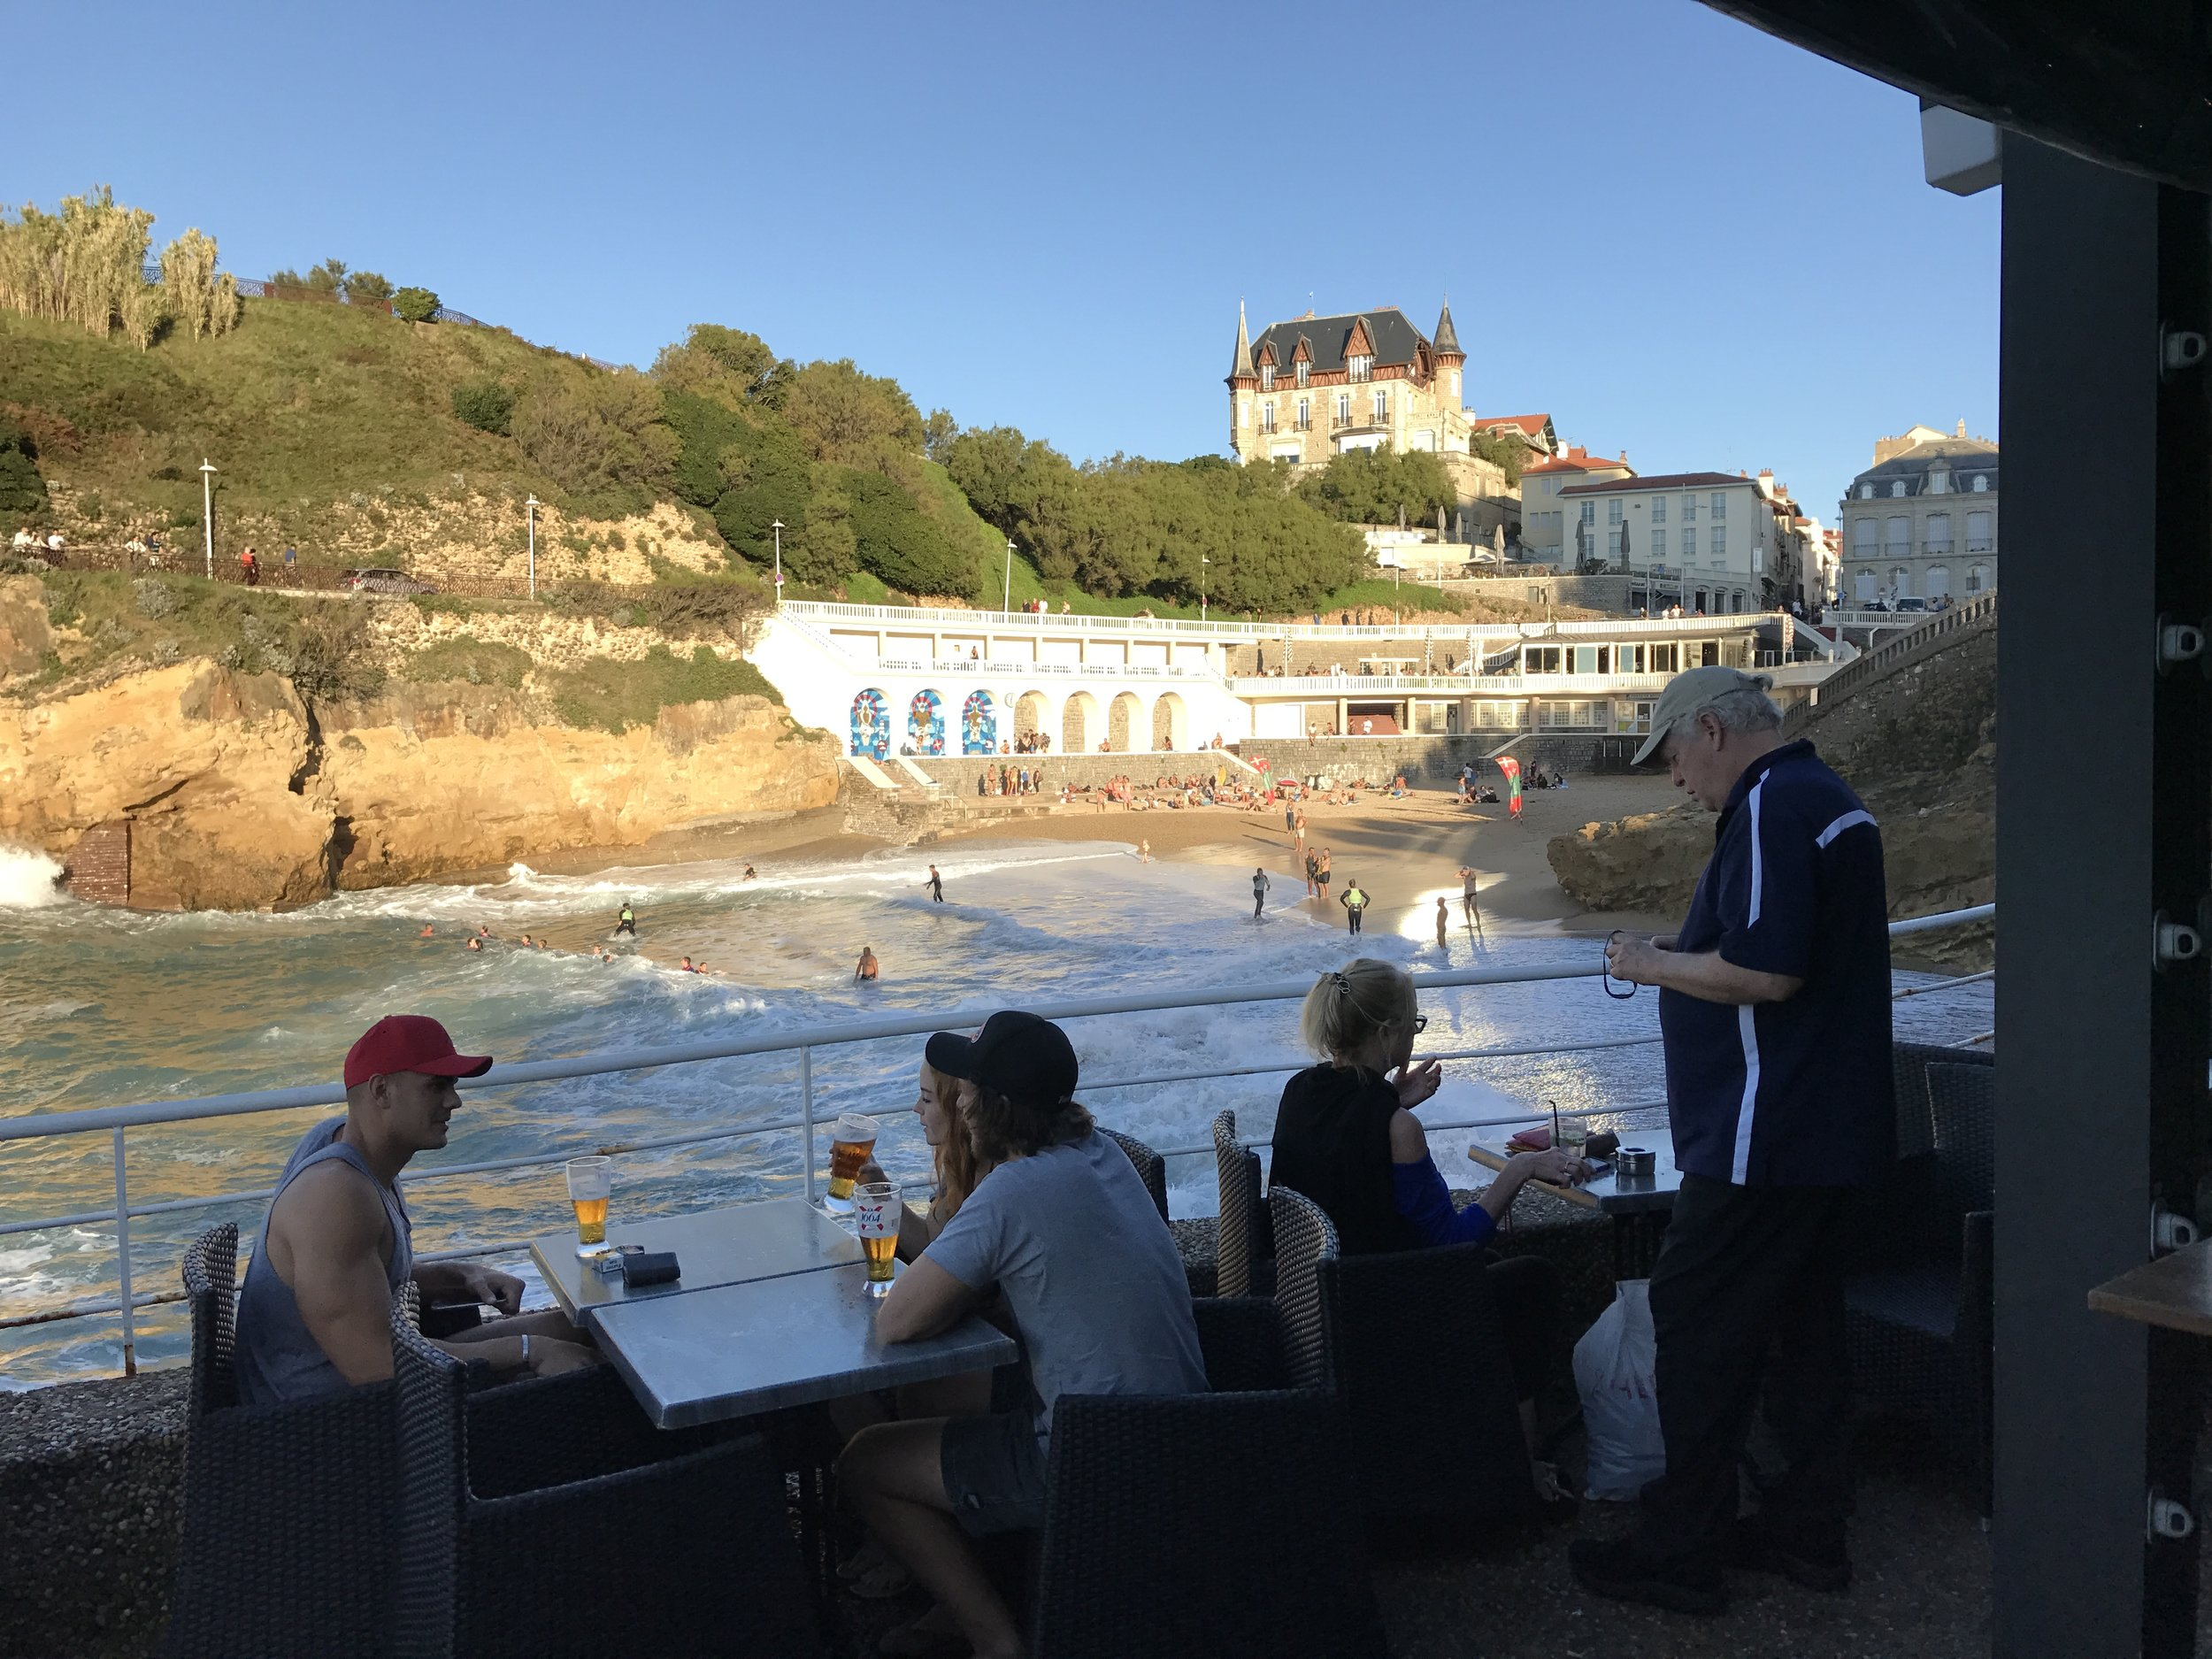 Great times await in Biarritz, that's why it is my number one! Sante!